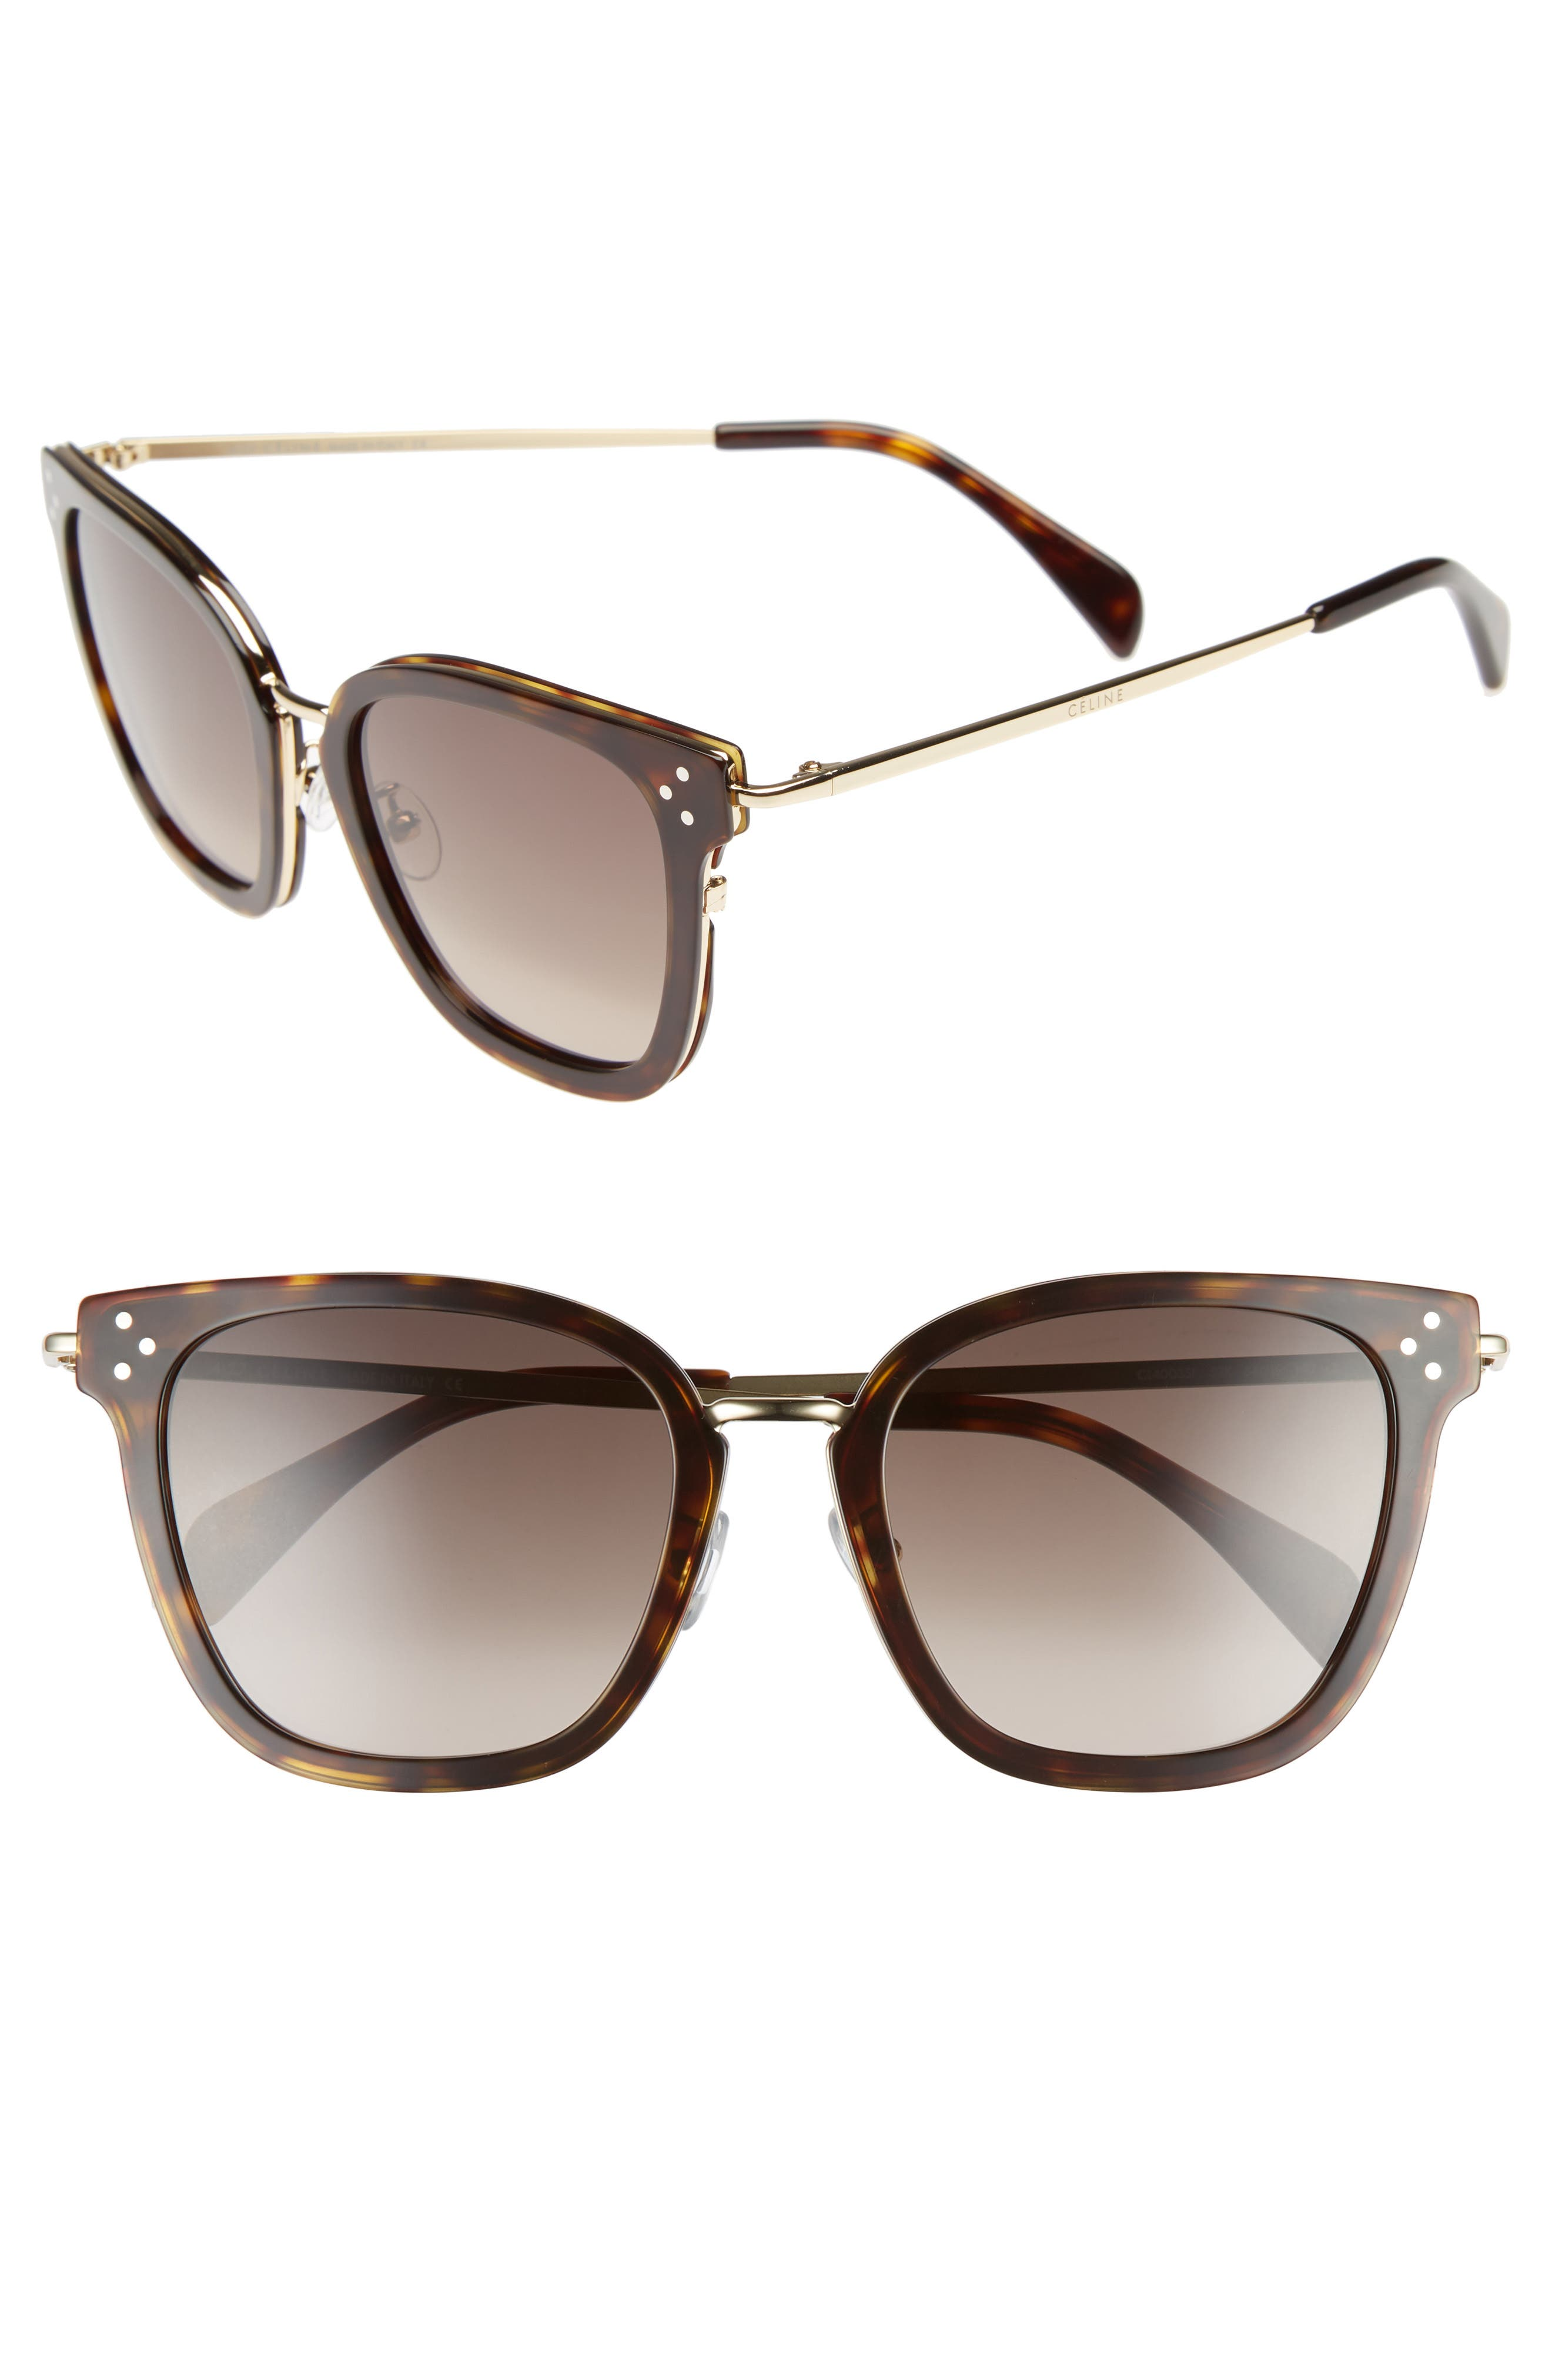 Special Fit 54mm Sunglasses,                         Main,                         color, Havana/ Gold/ Brown